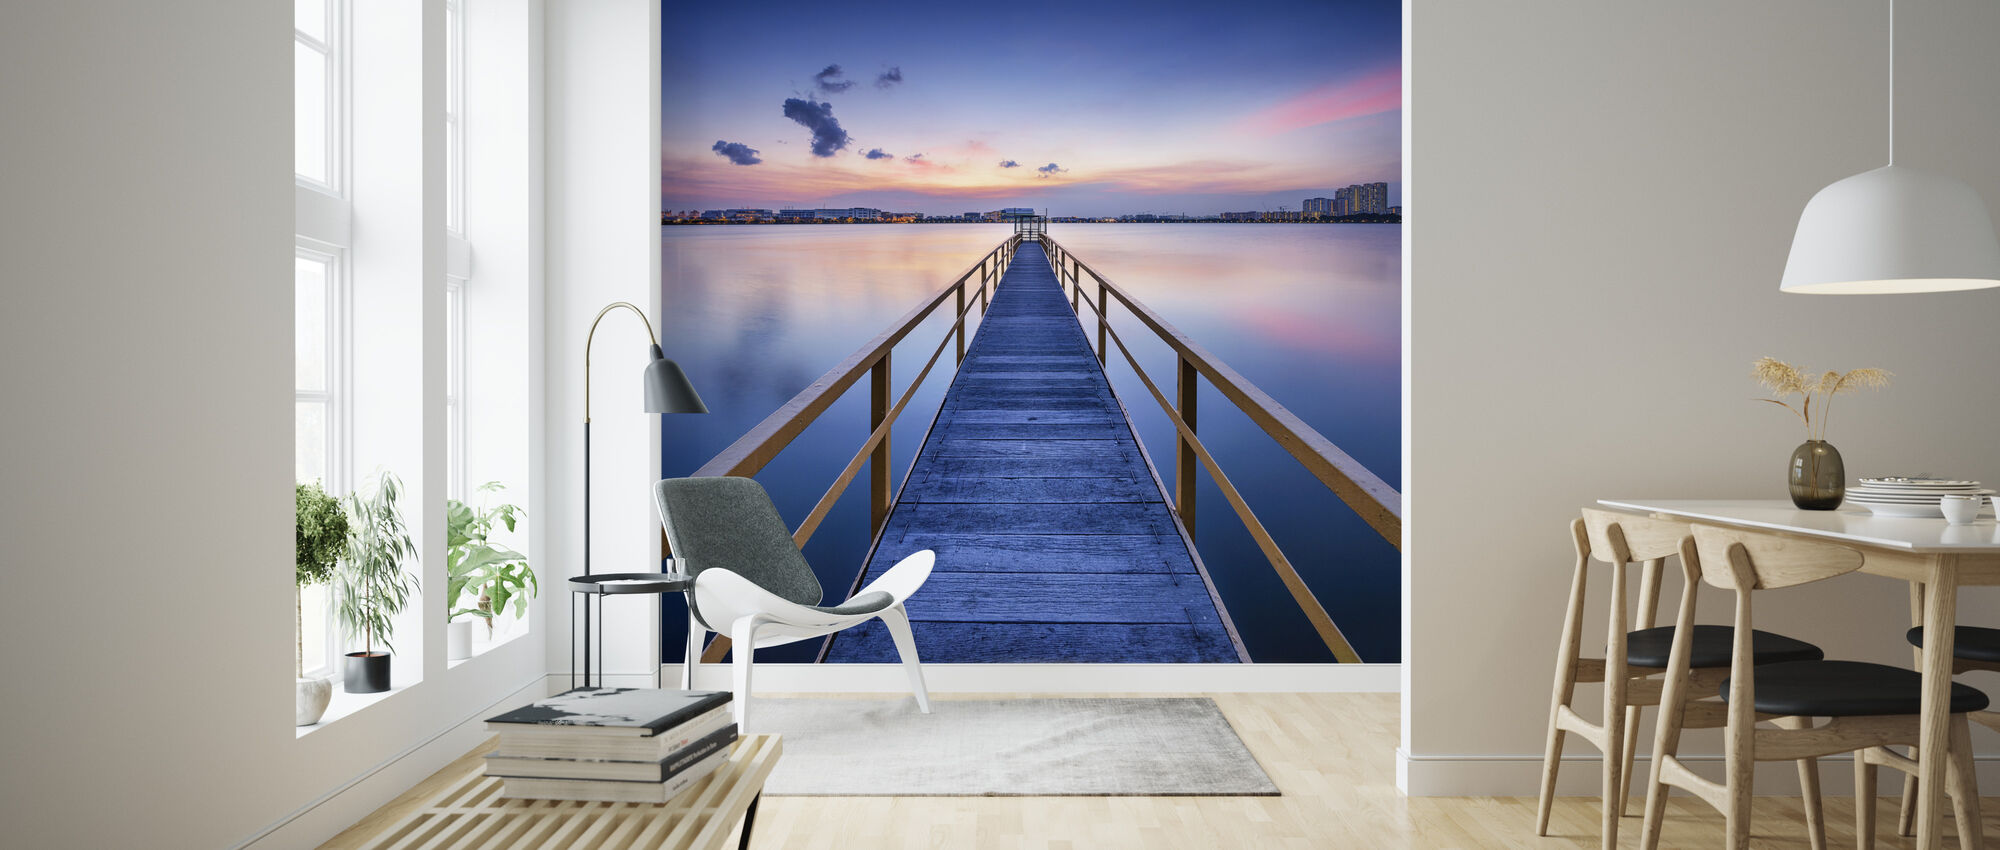 Rosy Sunset Pier - Behang - Woonkamer